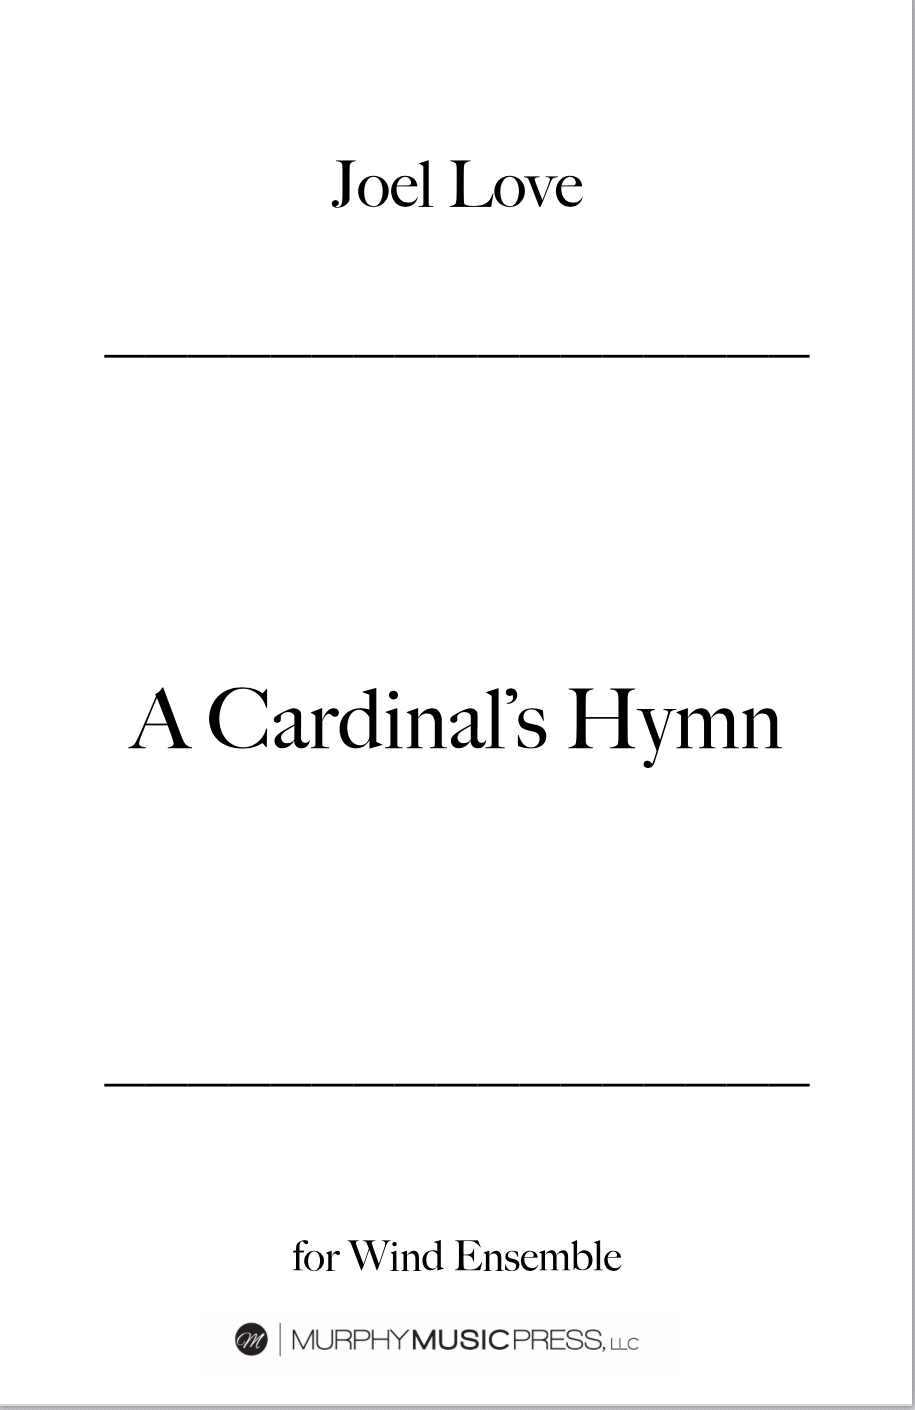 A Cardinals Hymn  by Joel Love